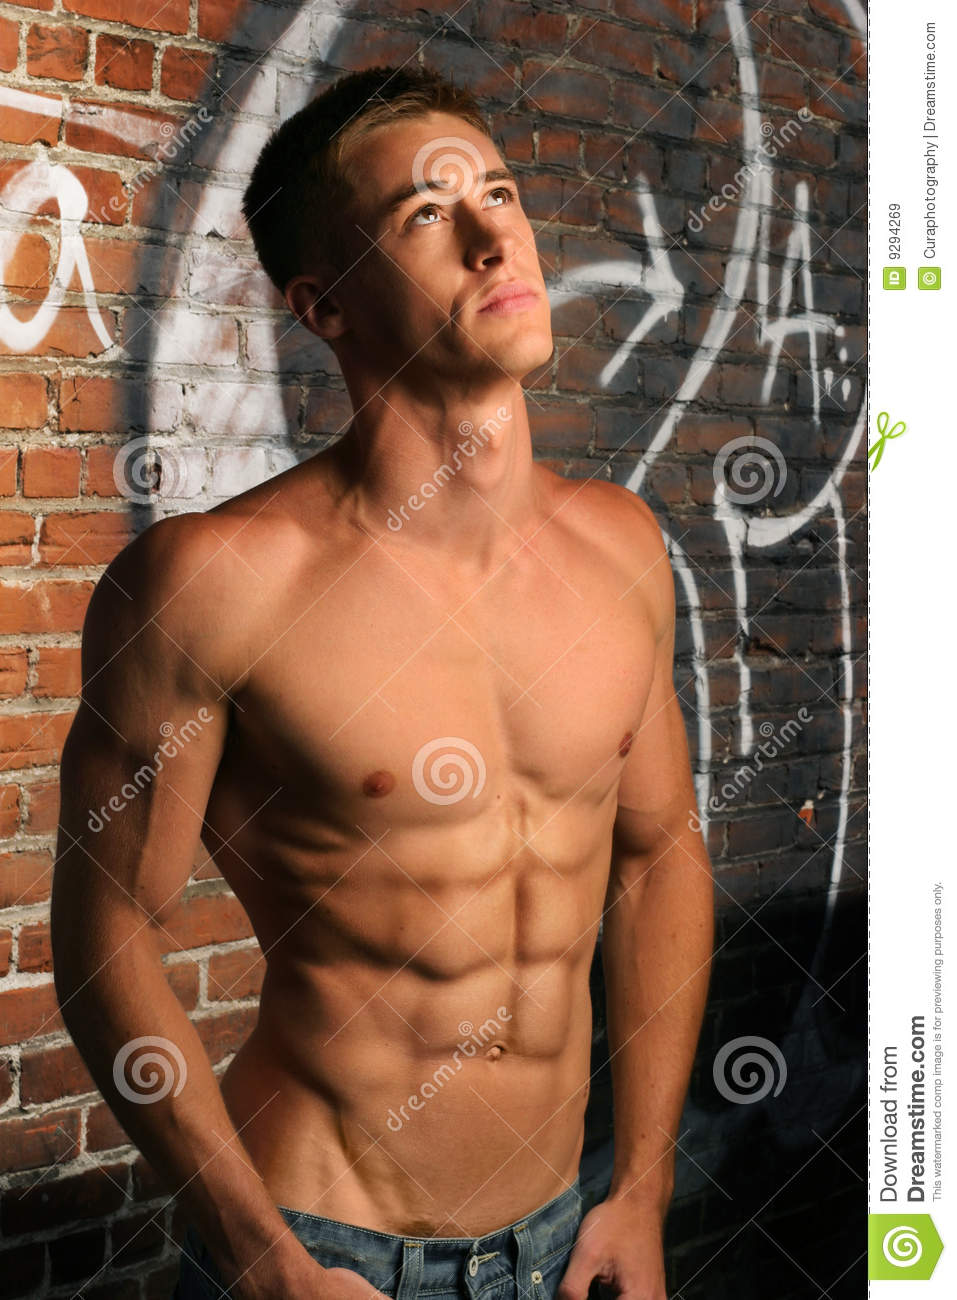 Shirtless Guy Looking Up stock image. Image of abdominals